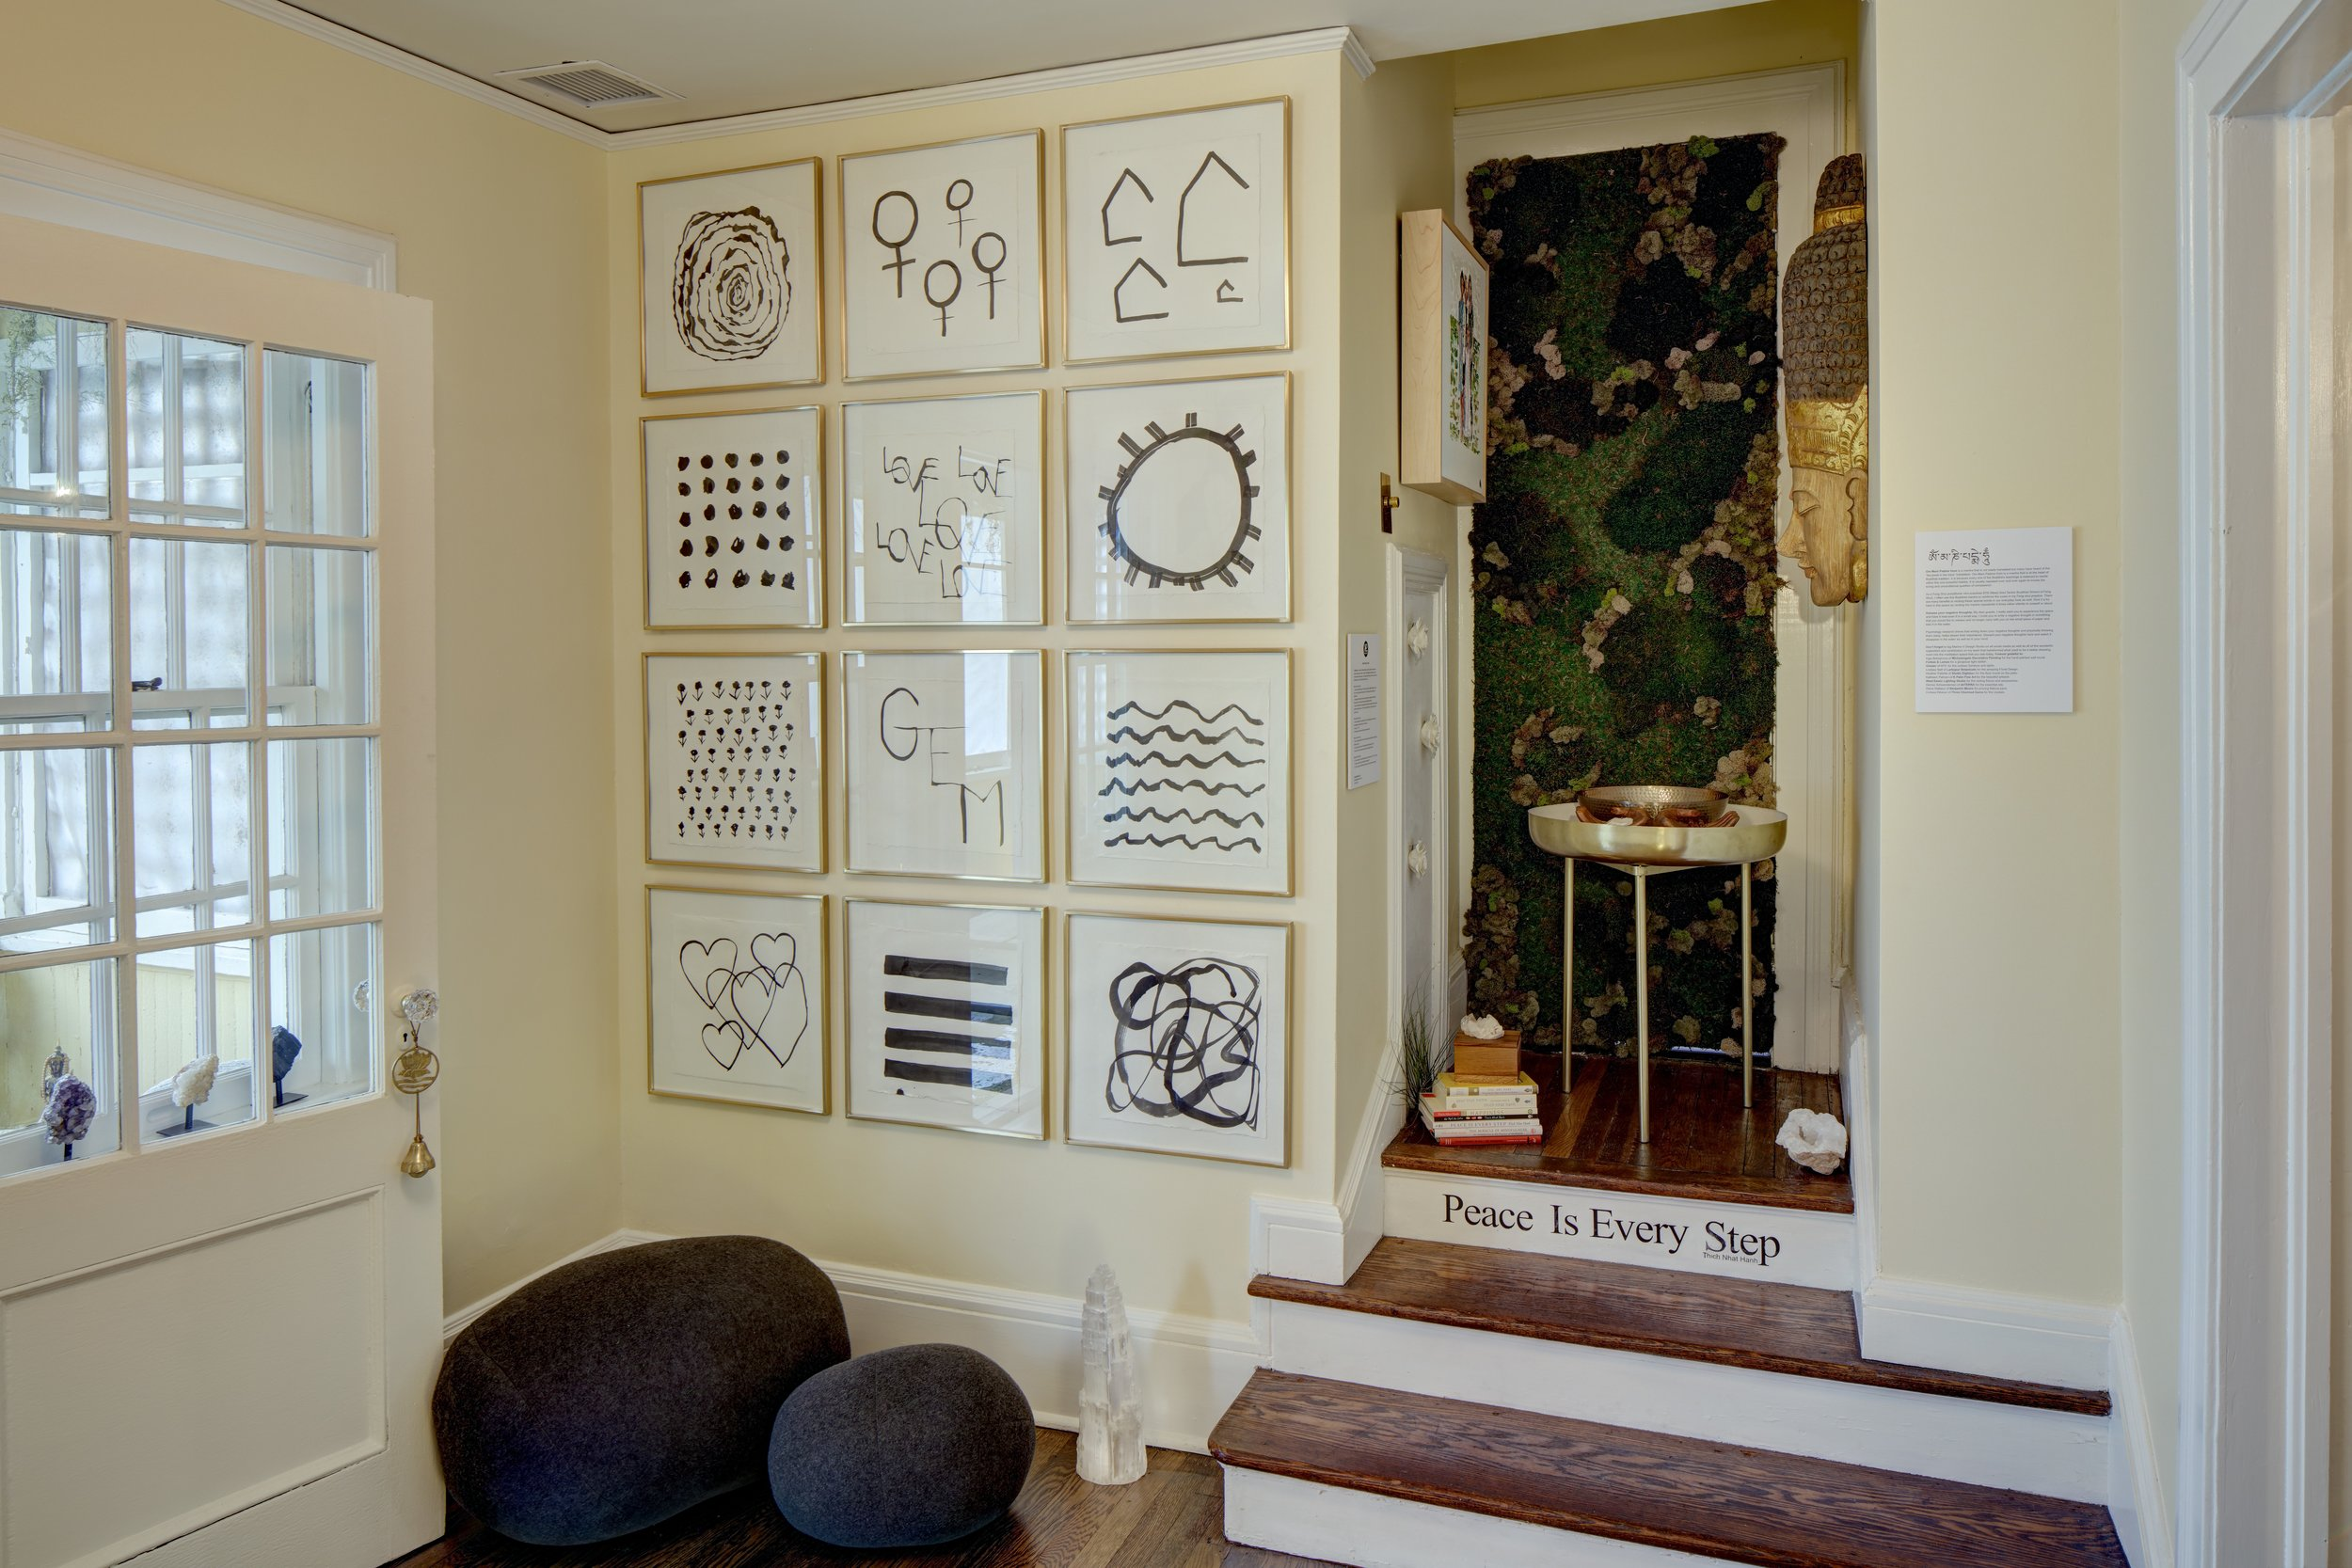 Marina V Design Studio Showhouse meditation space img3.jpg